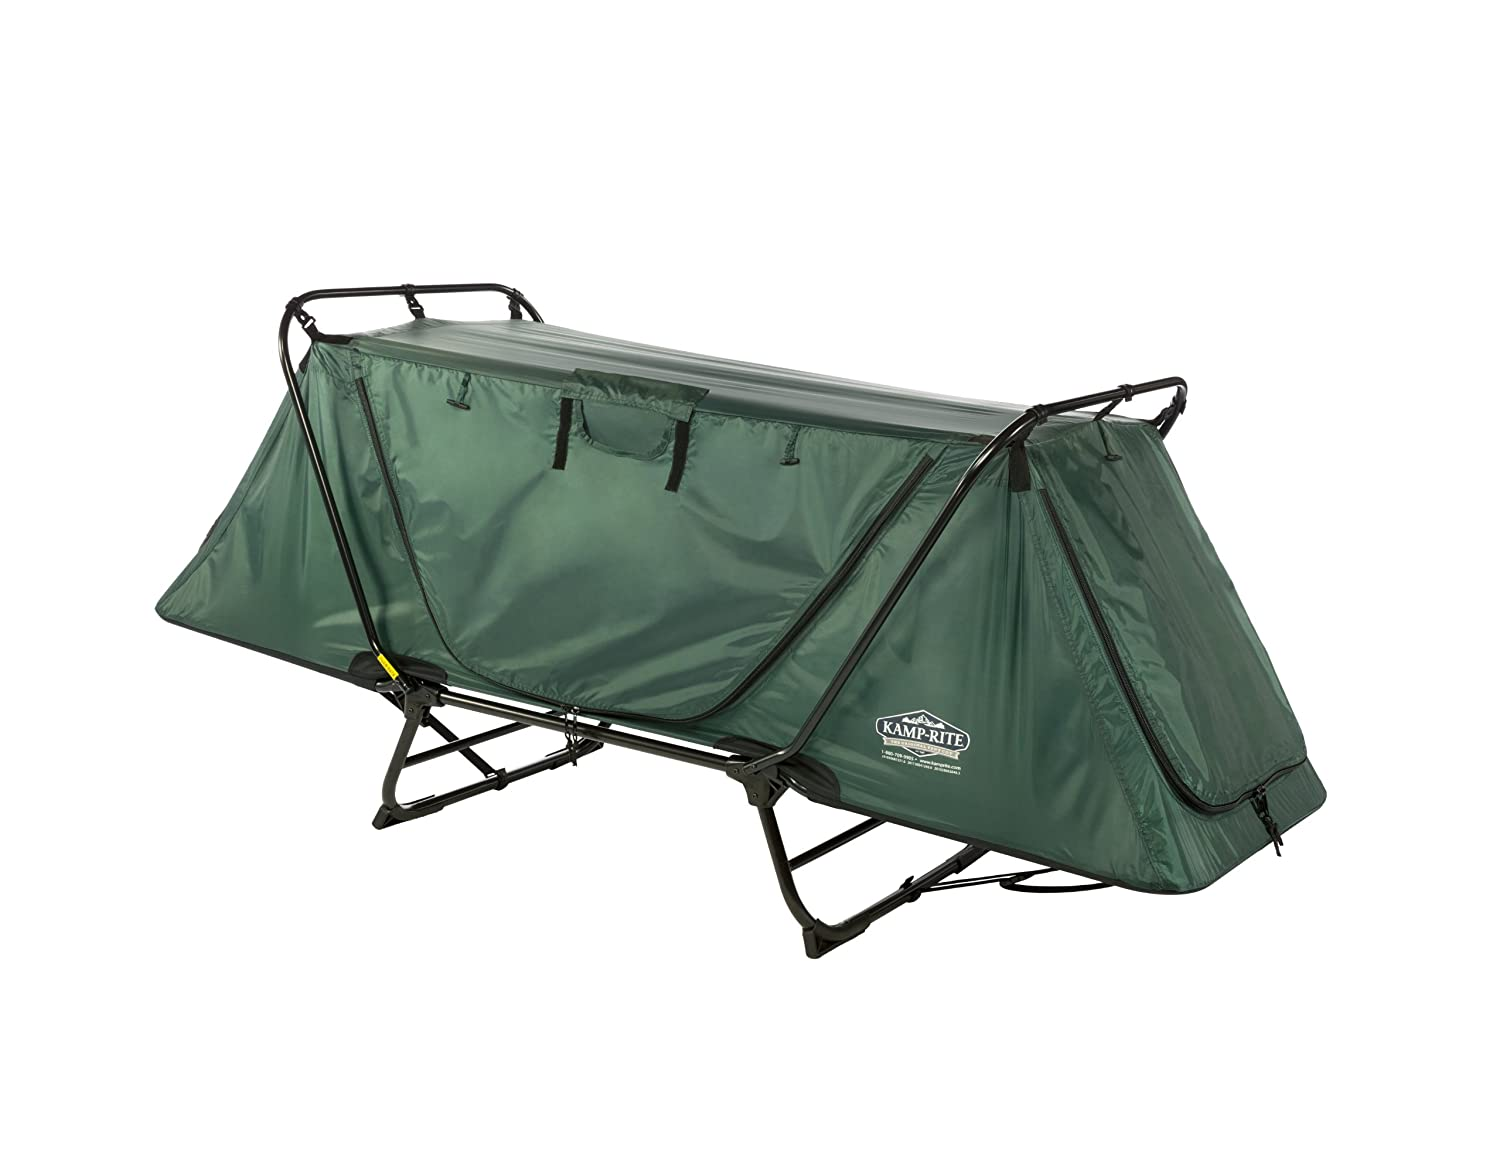 Amazon.com K&-Rite Tent Cot Original Size Tent Cot (Green) Sports u0026 Outdoors  sc 1 st  Amazon.com & Amazon.com: Kamp-Rite Tent Cot Original Size Tent Cot (Green ...